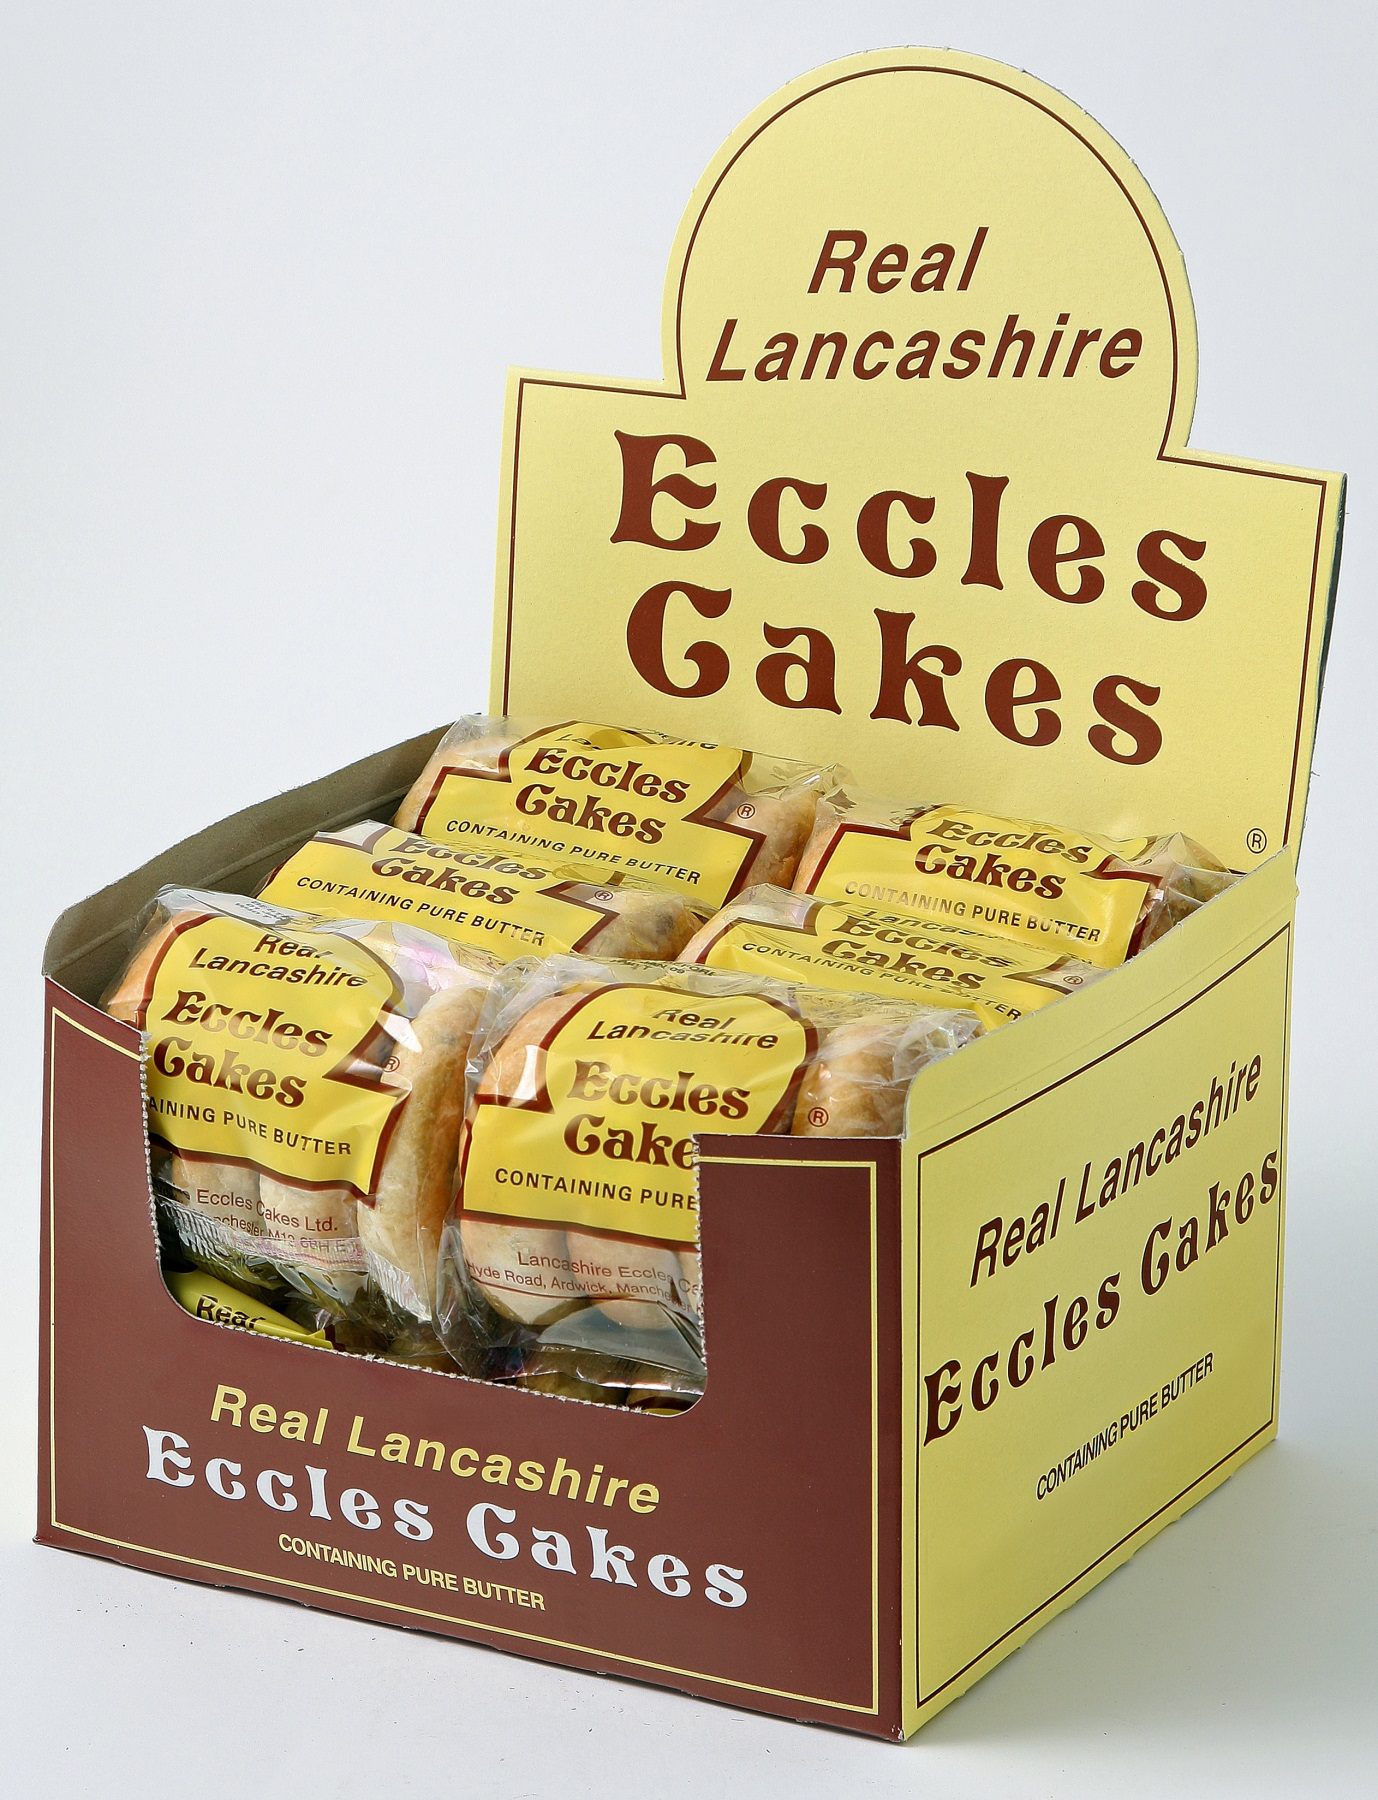 Real Lancashire Eccles Cakes The Cake Man